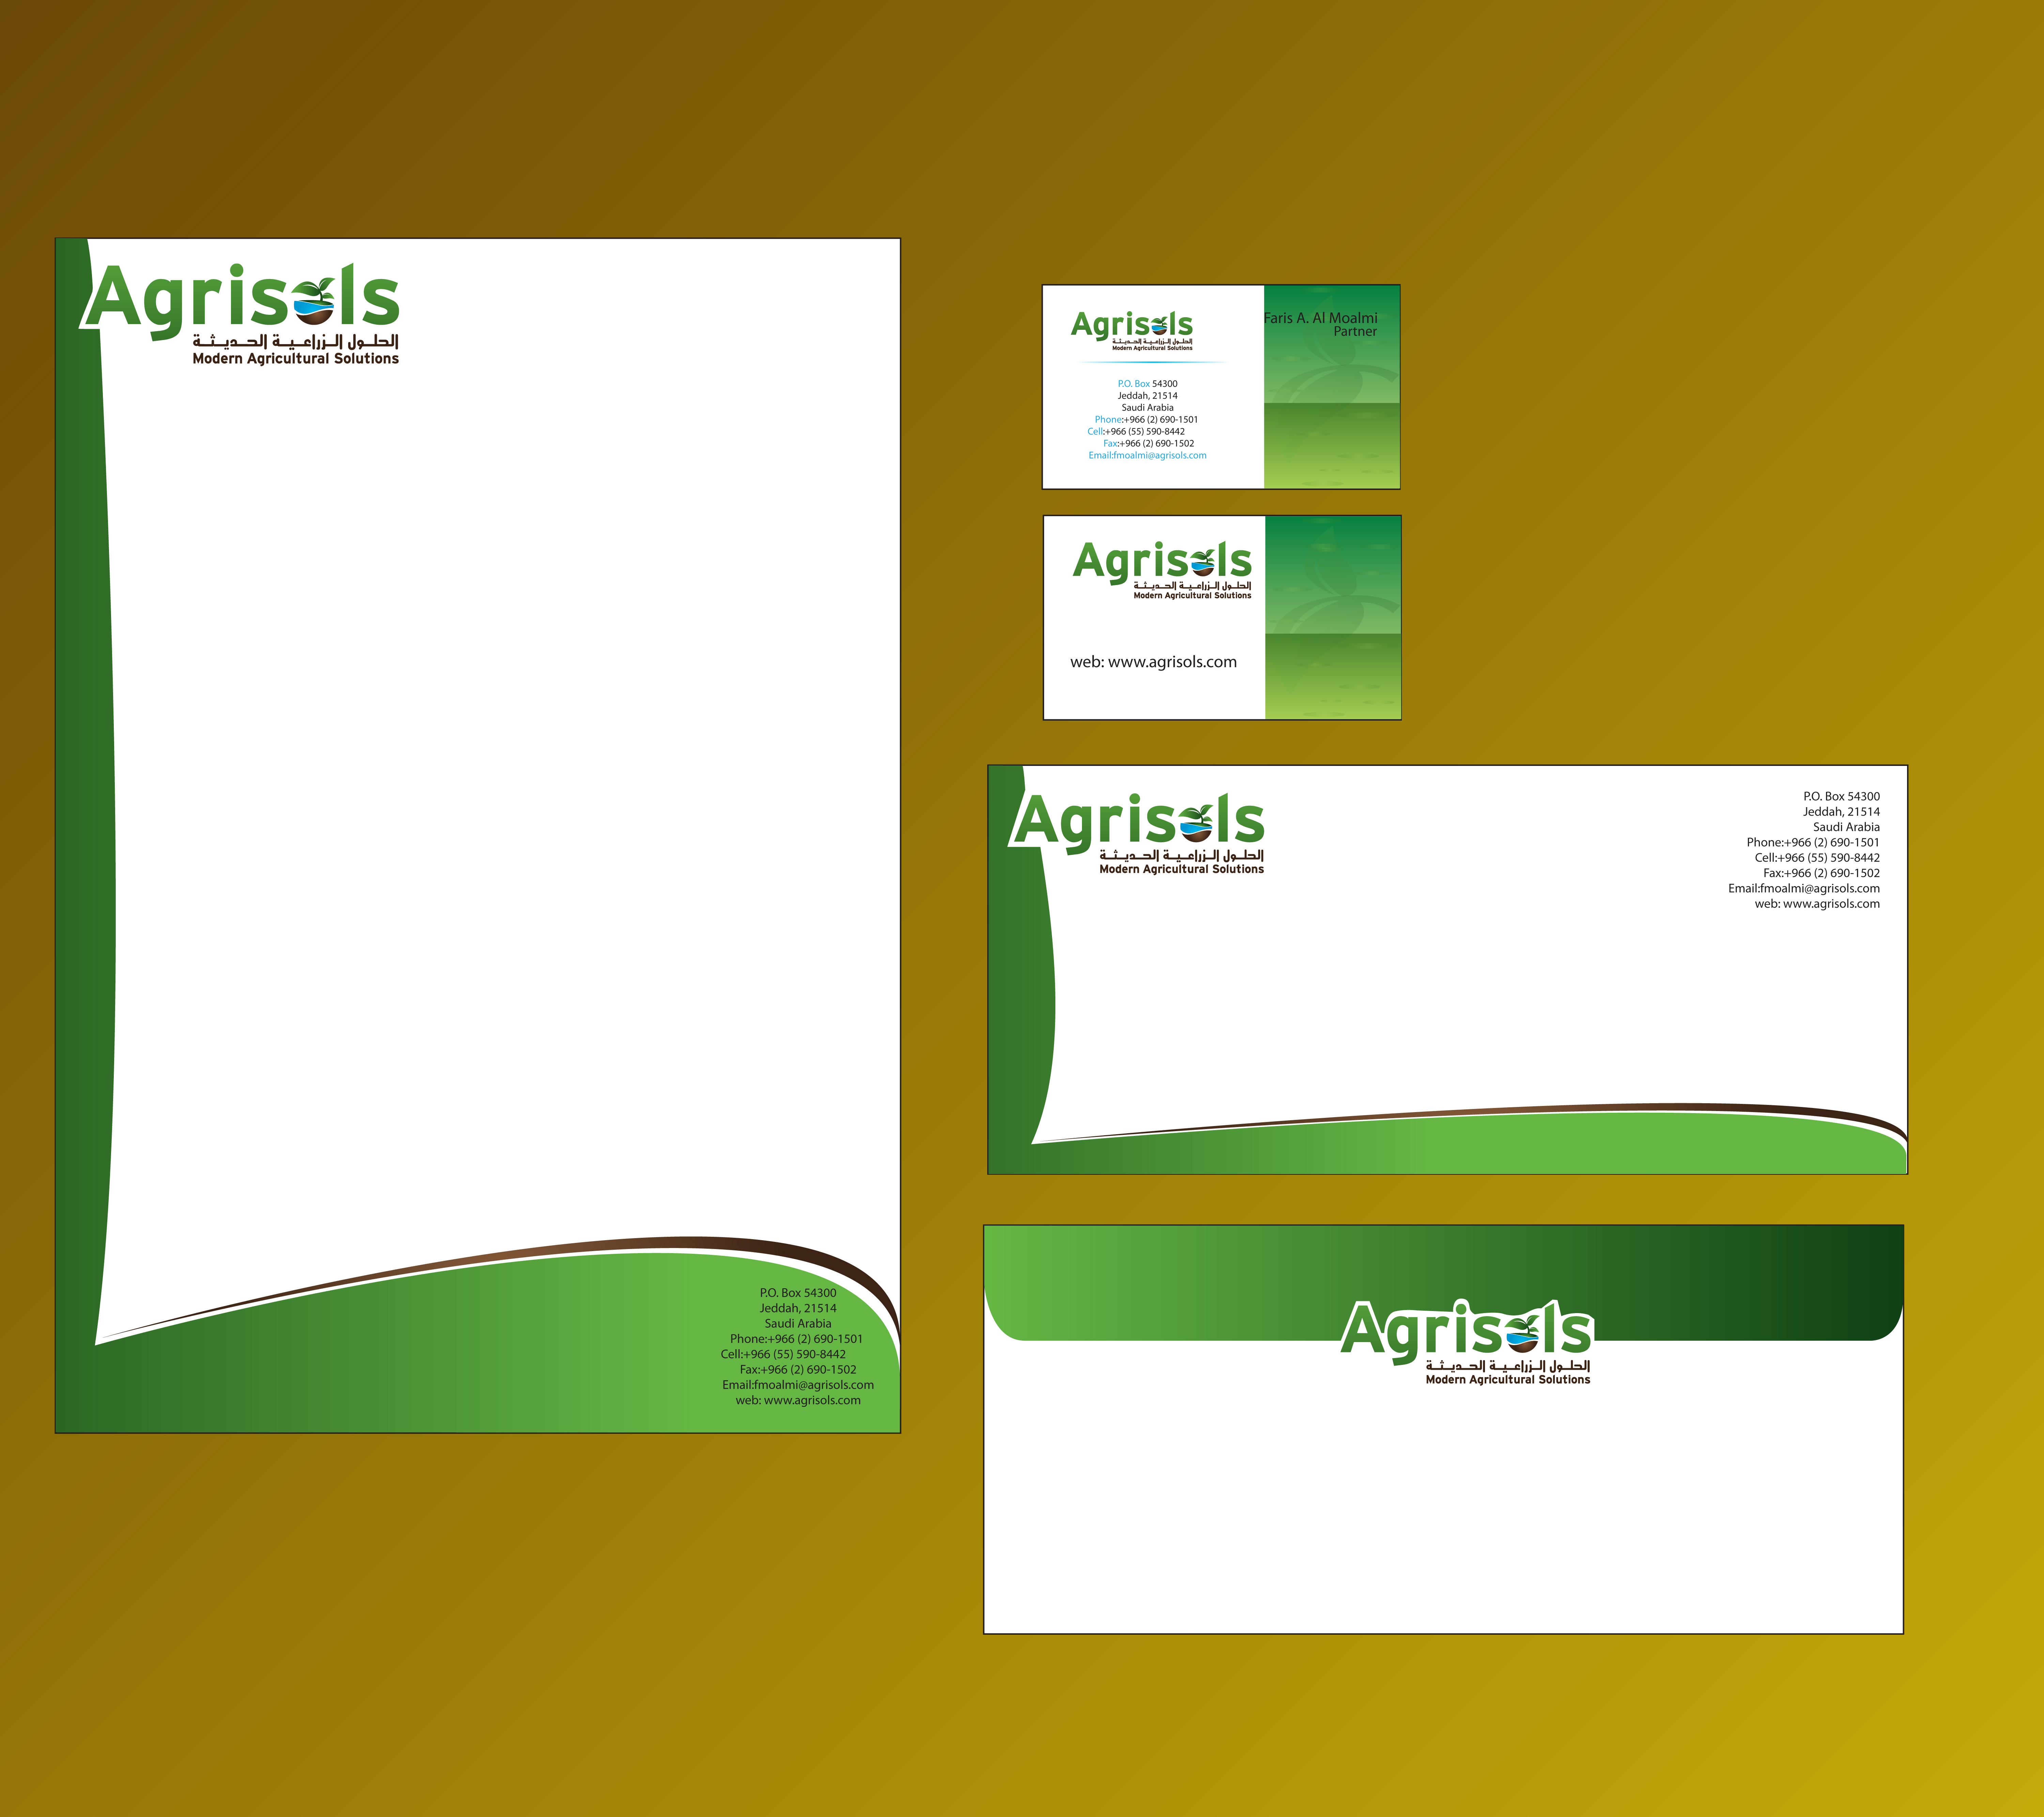 Check out this design for business cards a4 letterhead dl envelope check out this design for business cards a4 letterhead dl envelope c4 envelope c5 envelope ppt template file by mycroburst cheaphphosting Image collections